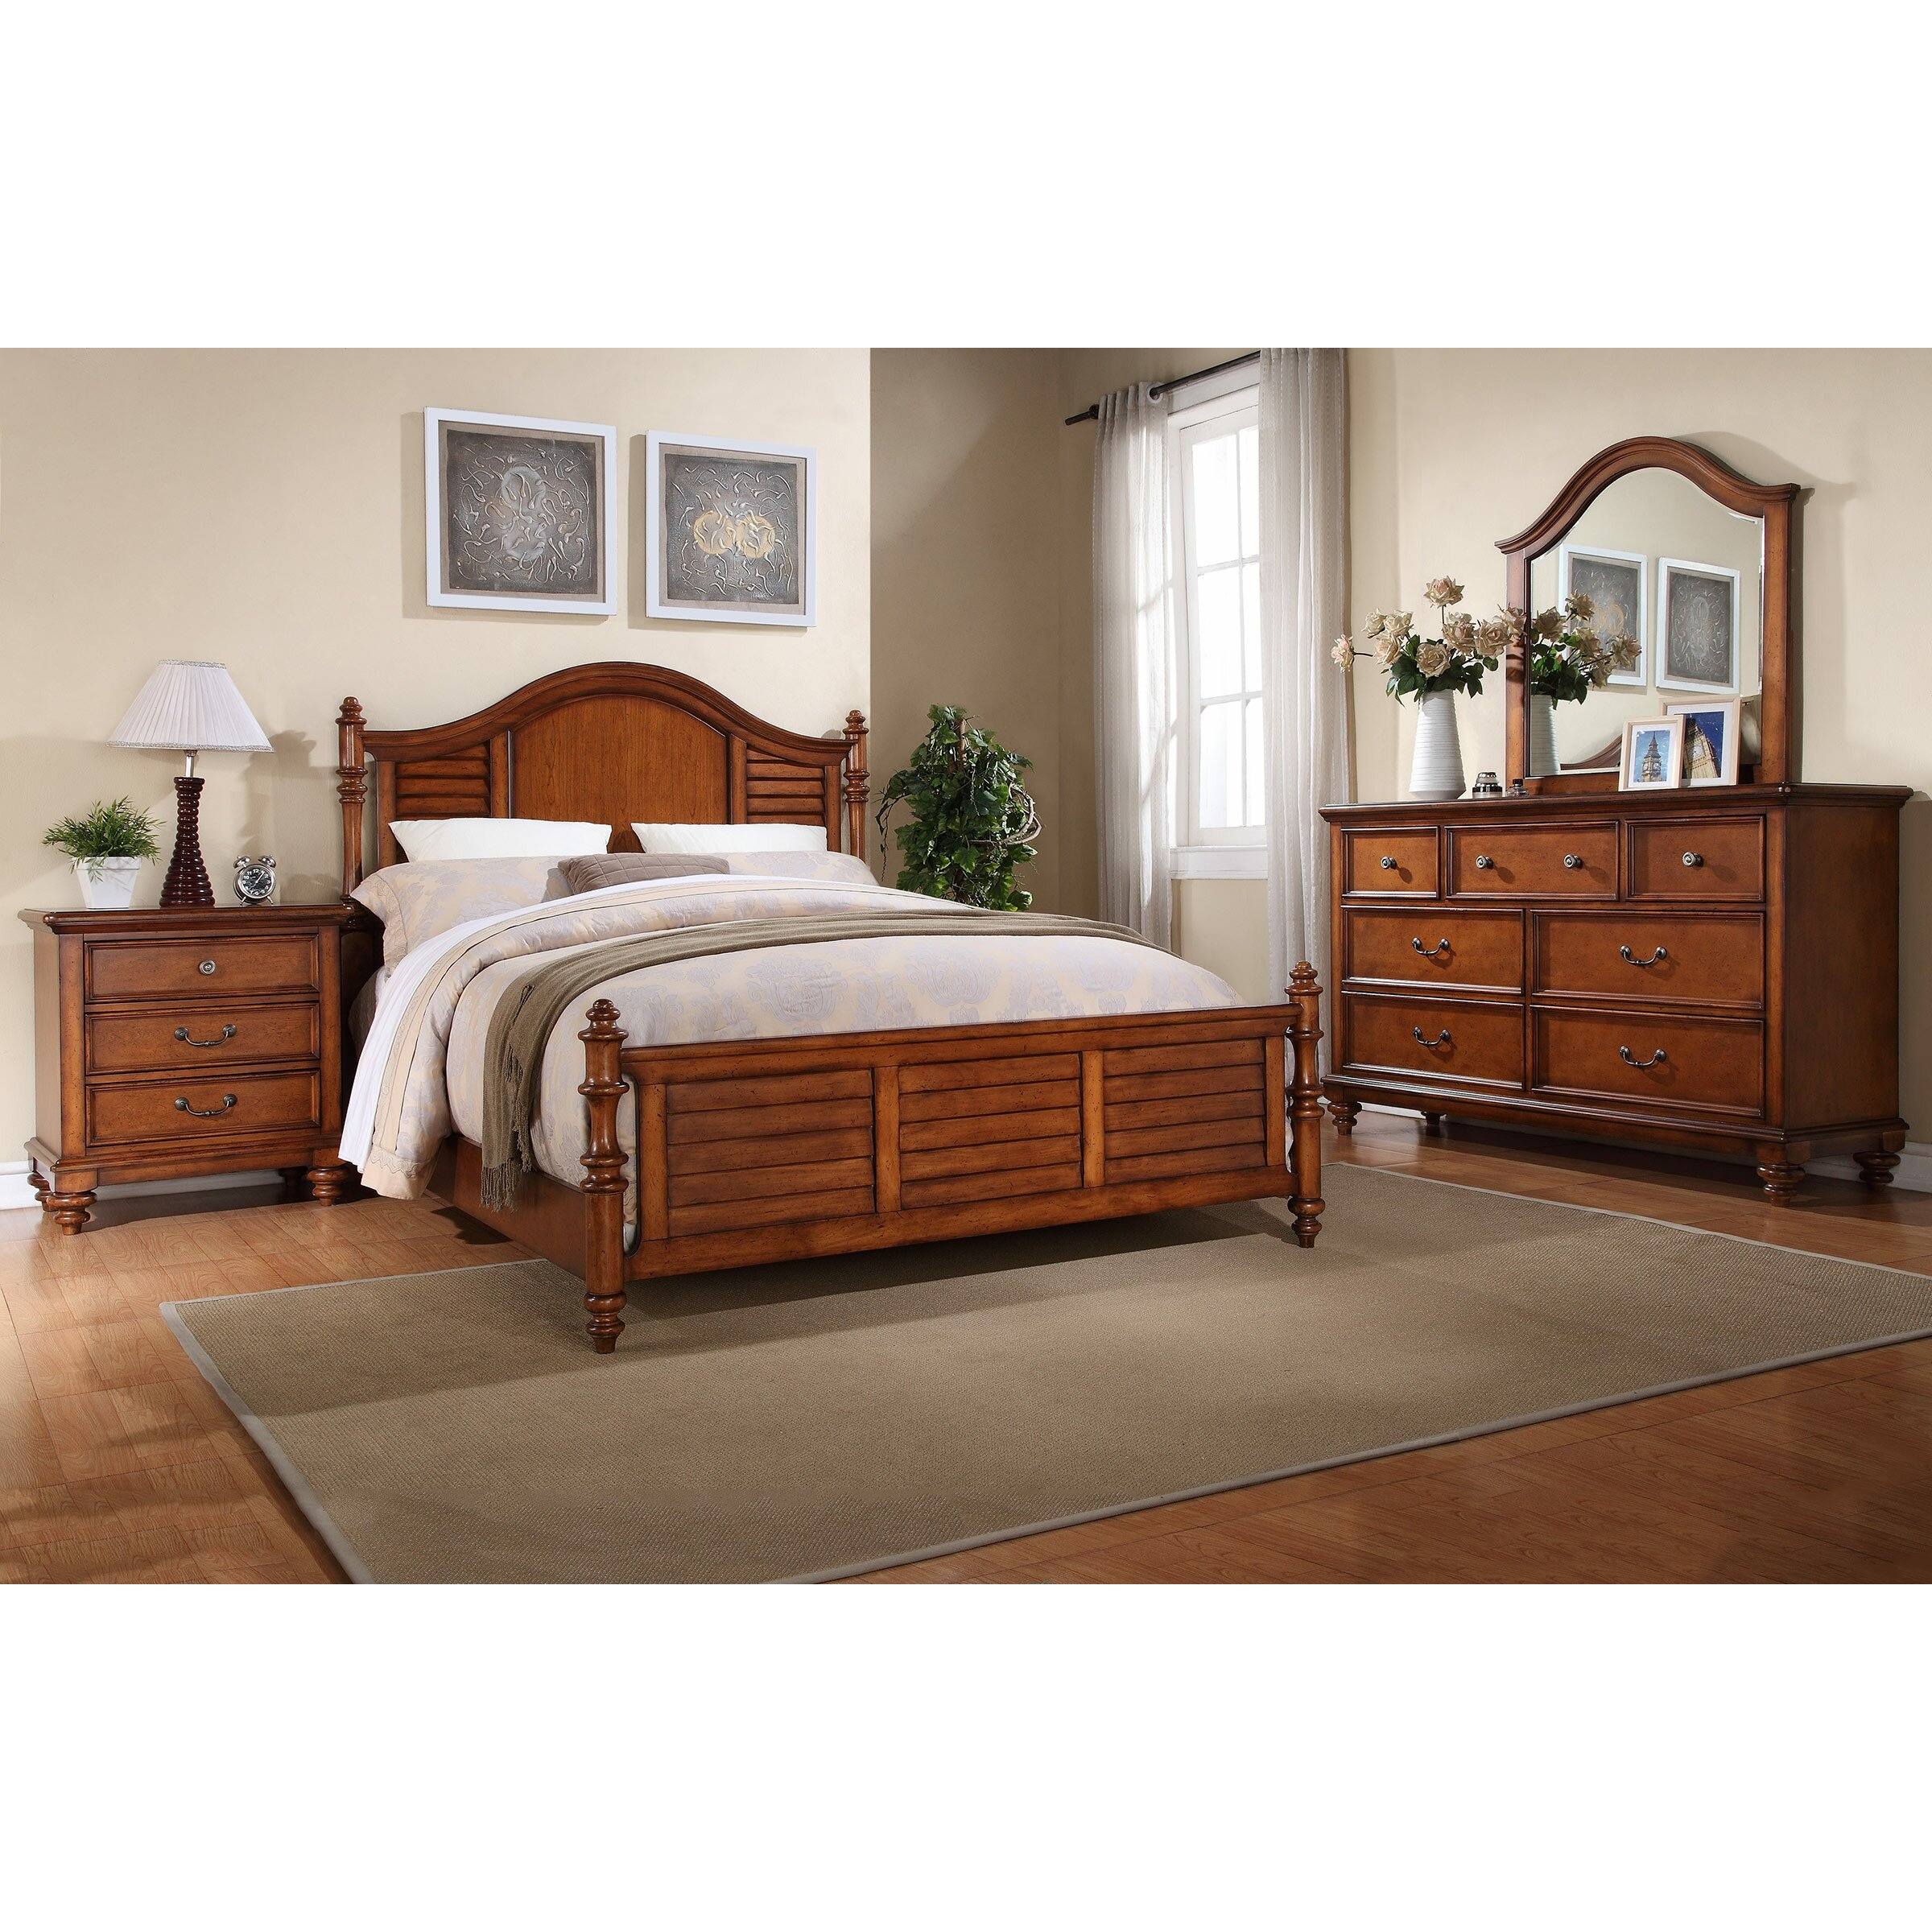 Darby Home Co Millbrook Panel Customizable Bedroom Set Reviews Wayfair